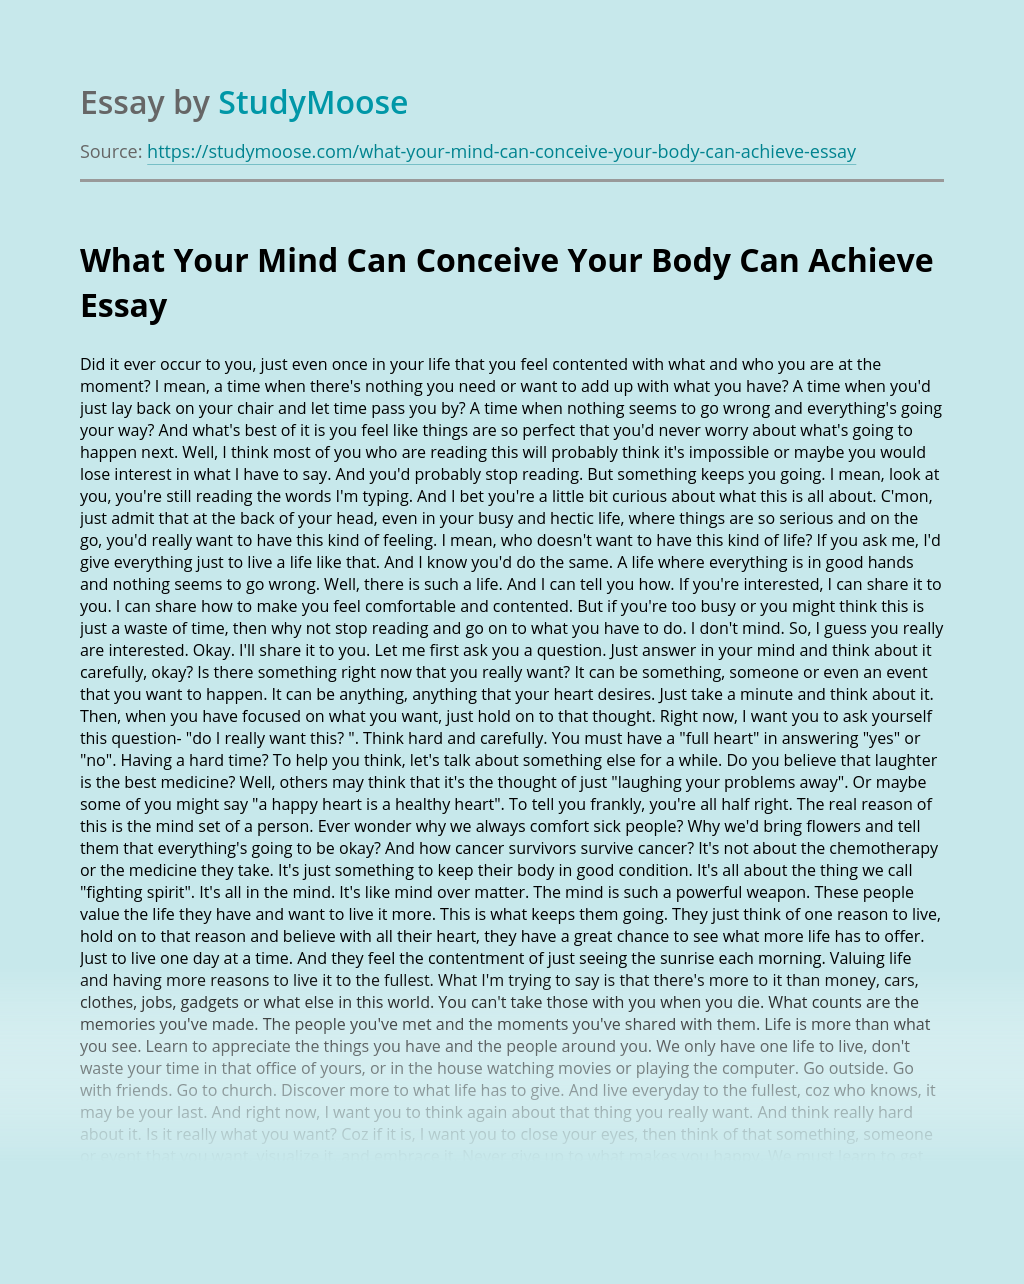 What Your Mind Can Conceive Your Body Can Achieve